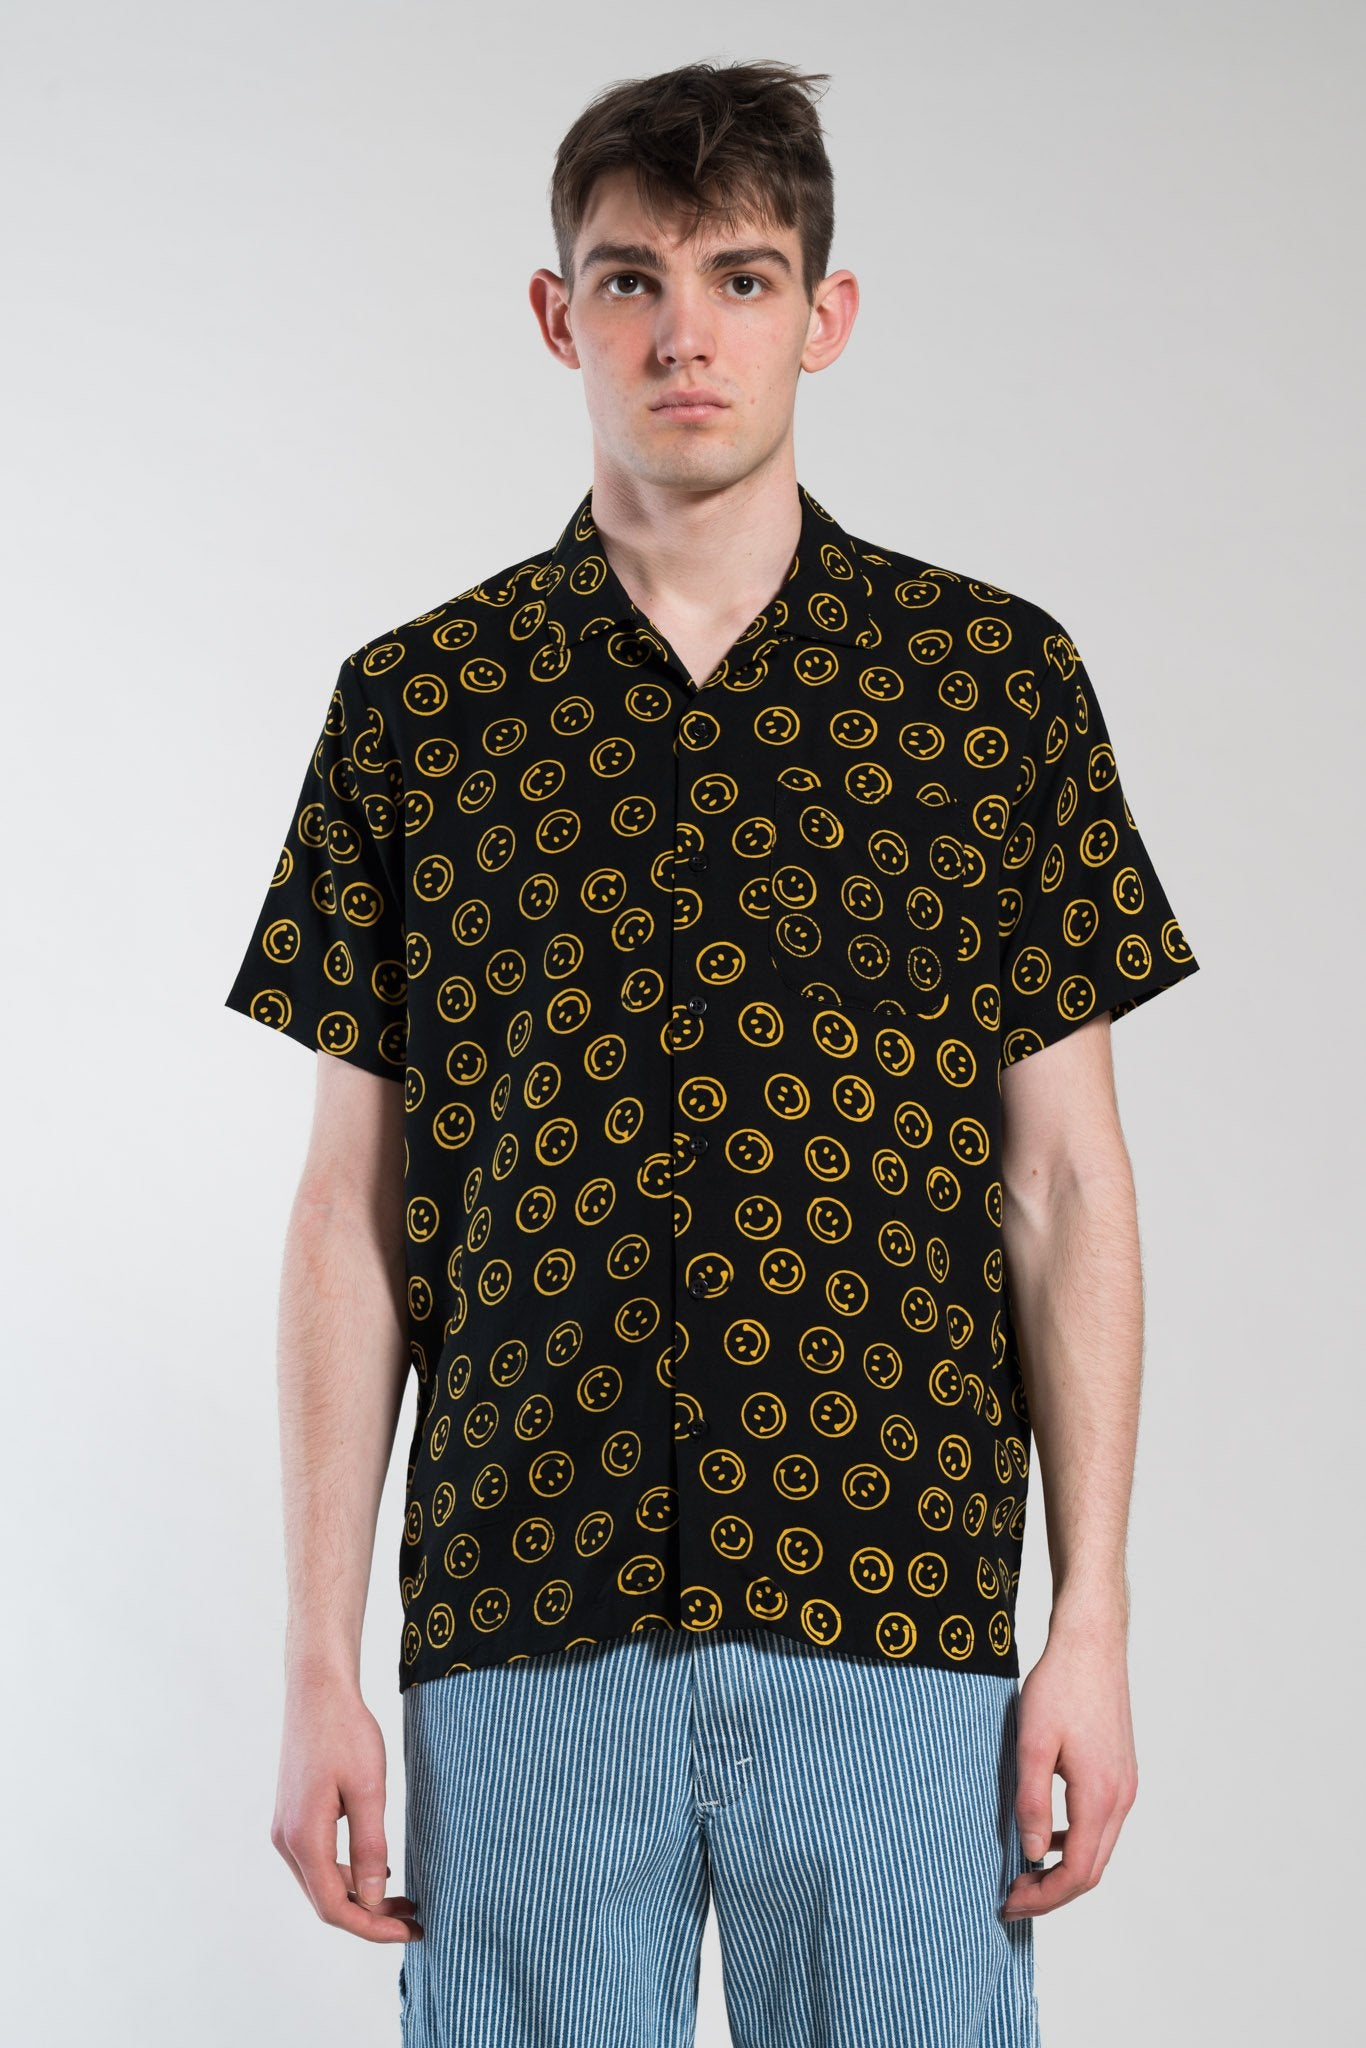 Stan Ray - SMILEY BATIK SHIRT - size S + L sold out!